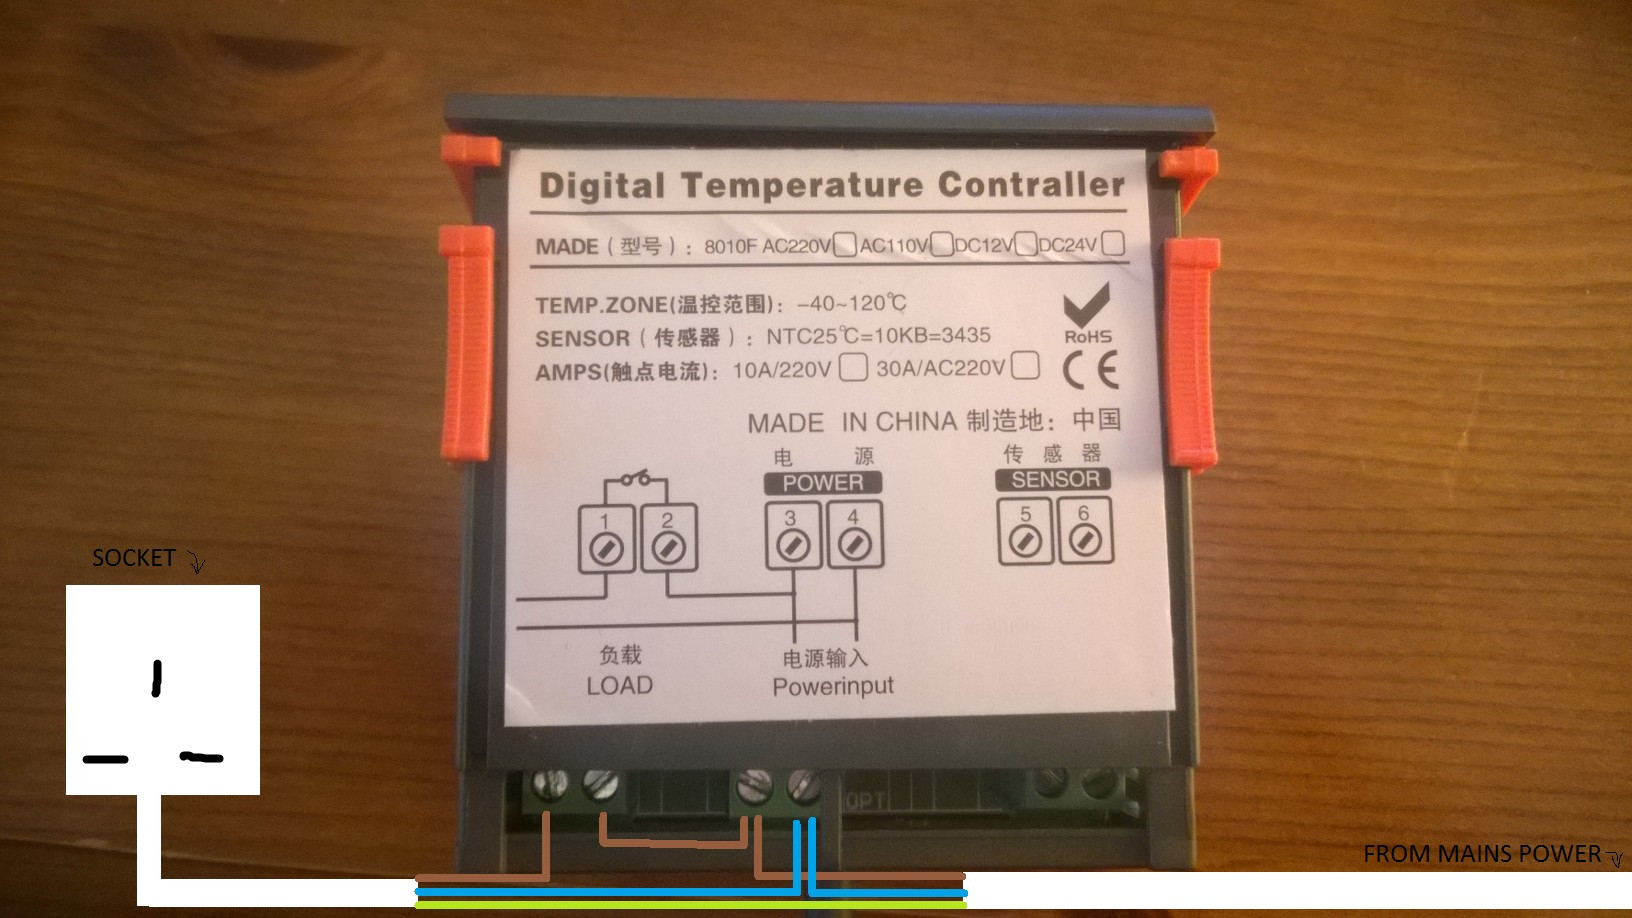 digital temperature controller wiring diagram 1999 mercury cougar advice on power supply to